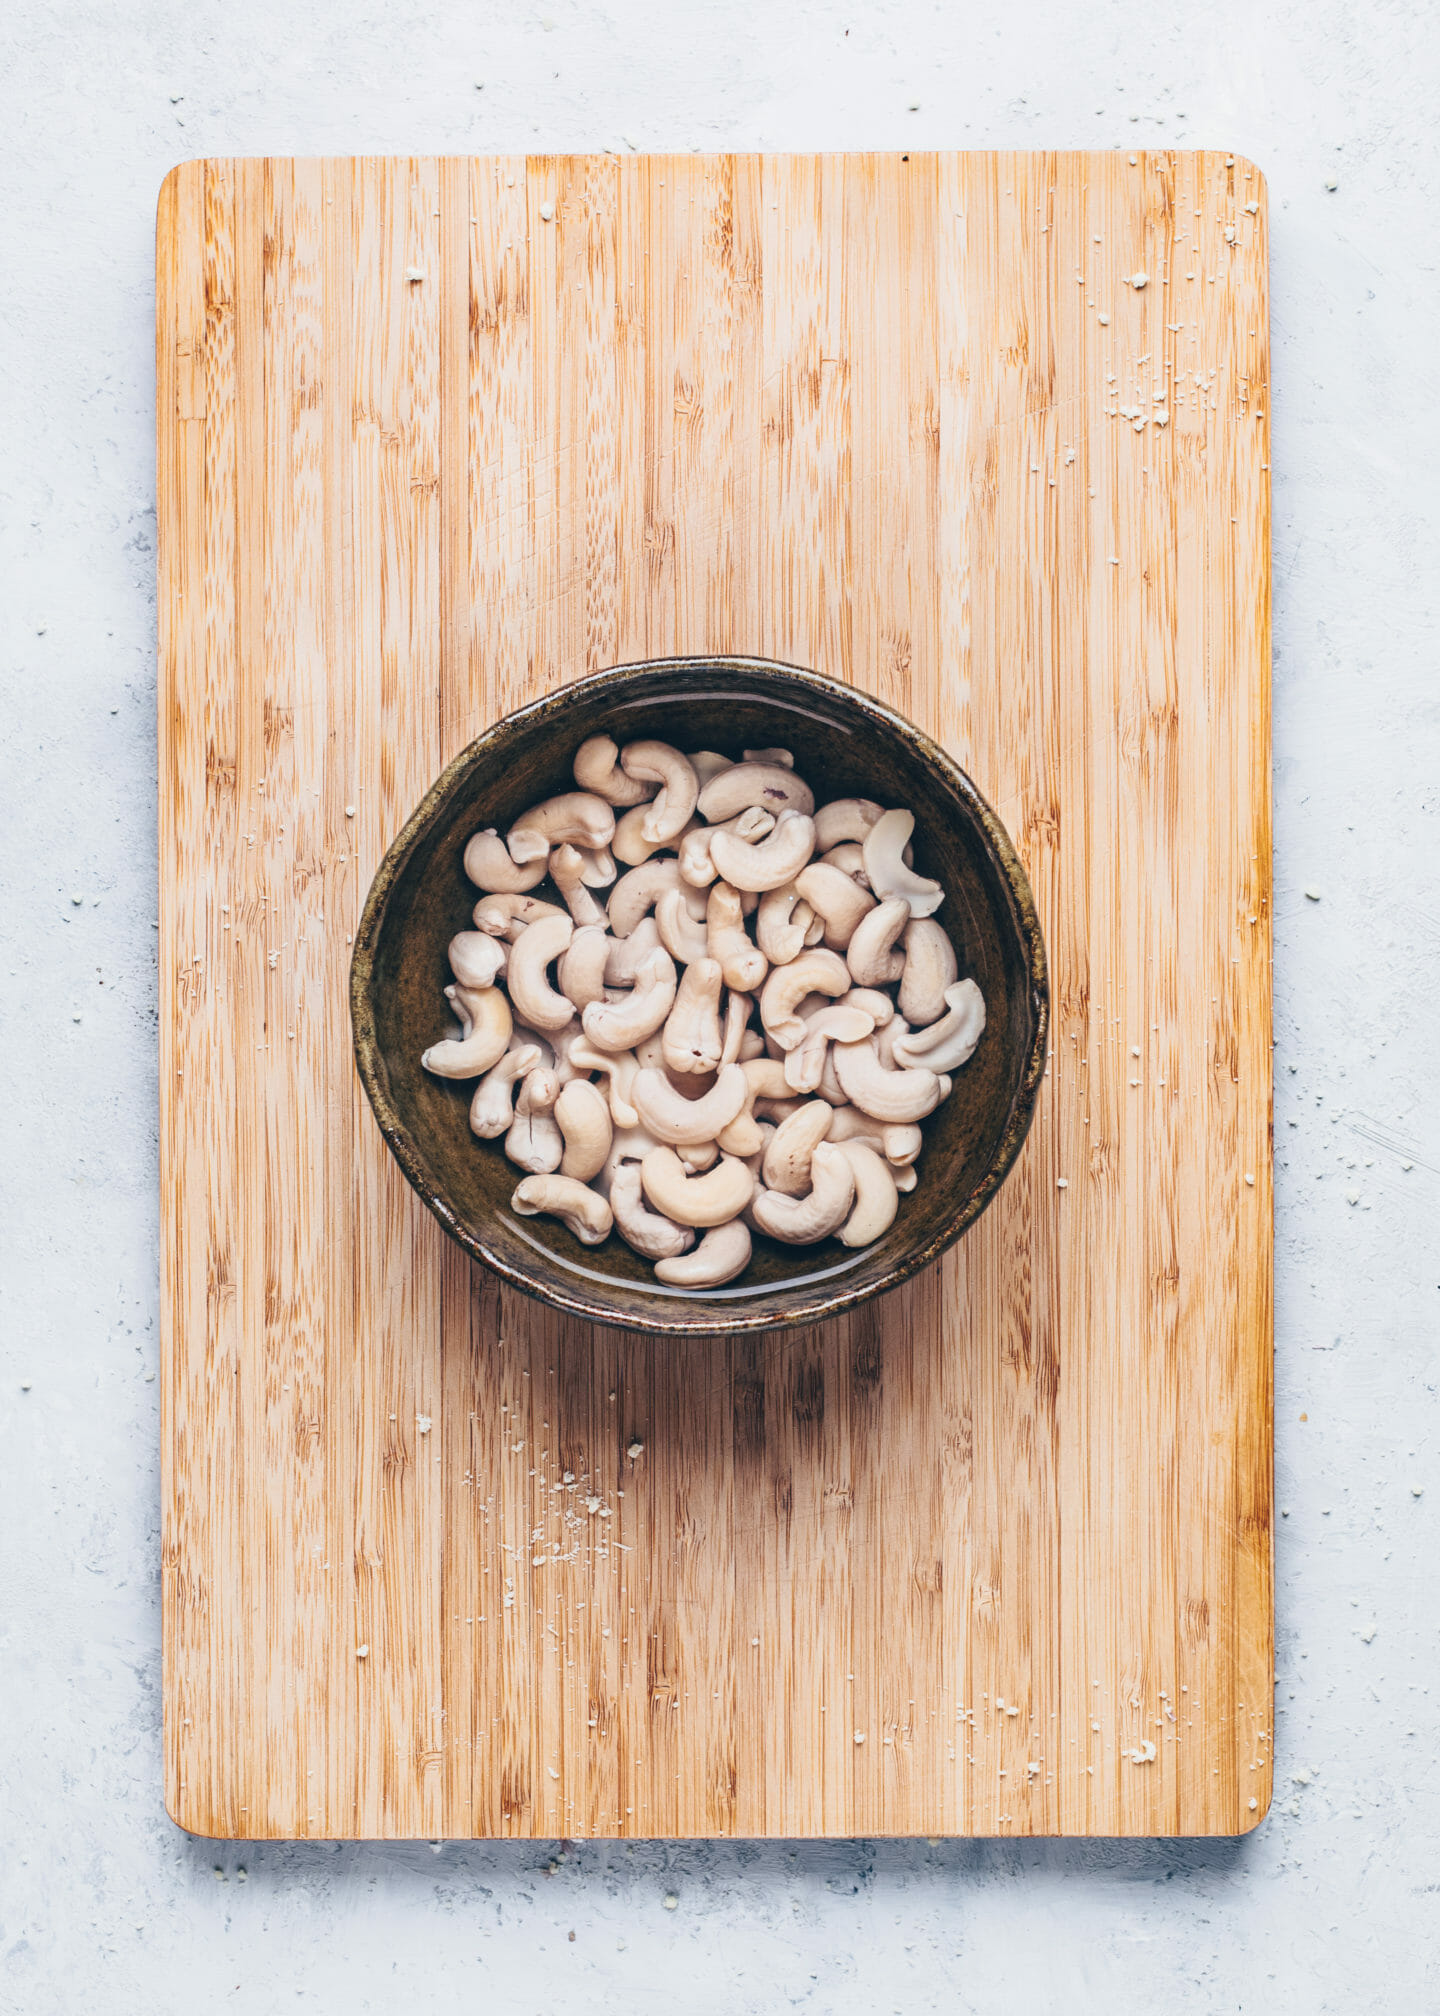 Soaking Cashews in a bowl with water